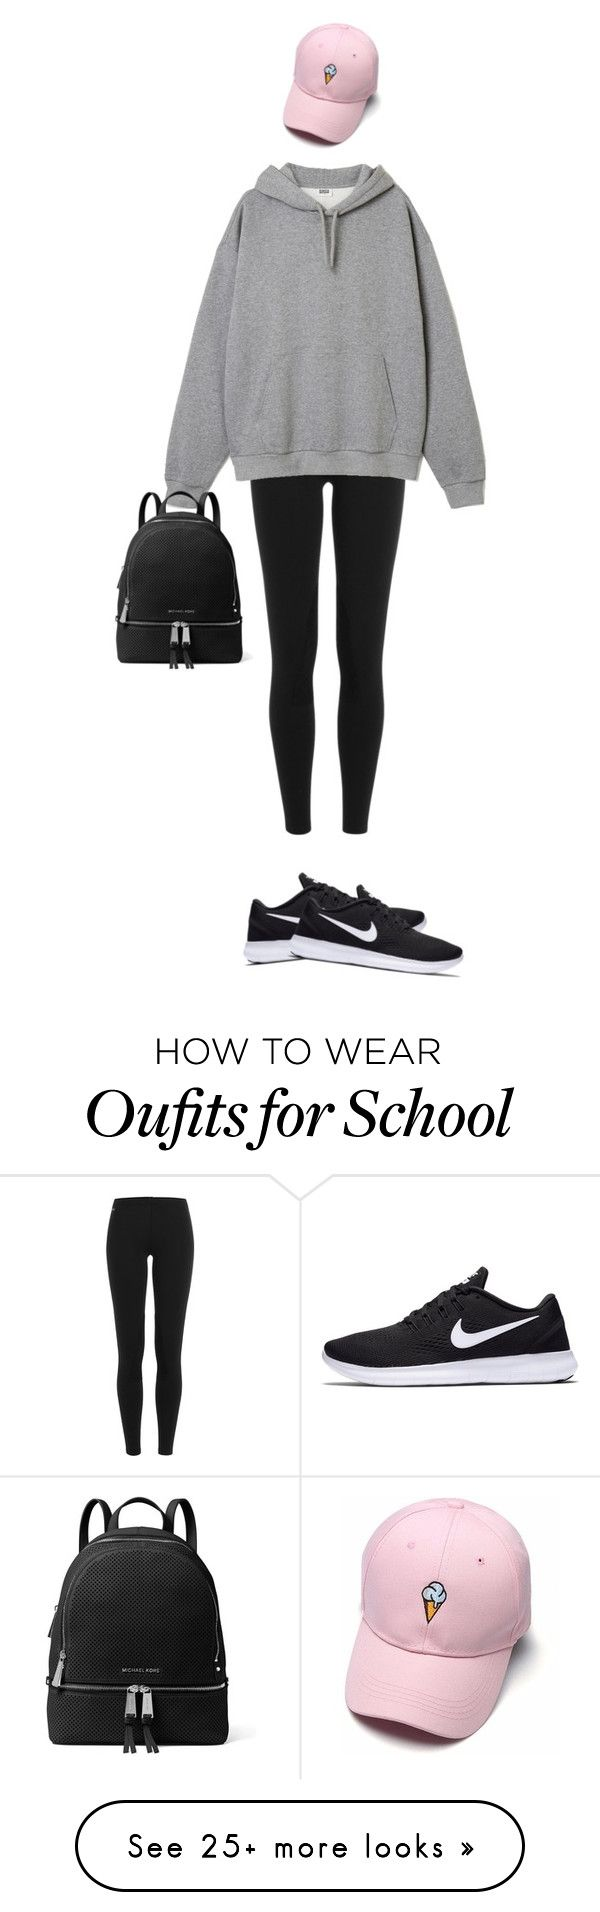 """Comfy school"" by poltergeistii on Polyvore featuring Polo Ralph Lauren, NIKE and MICHAEL Michael Kors"